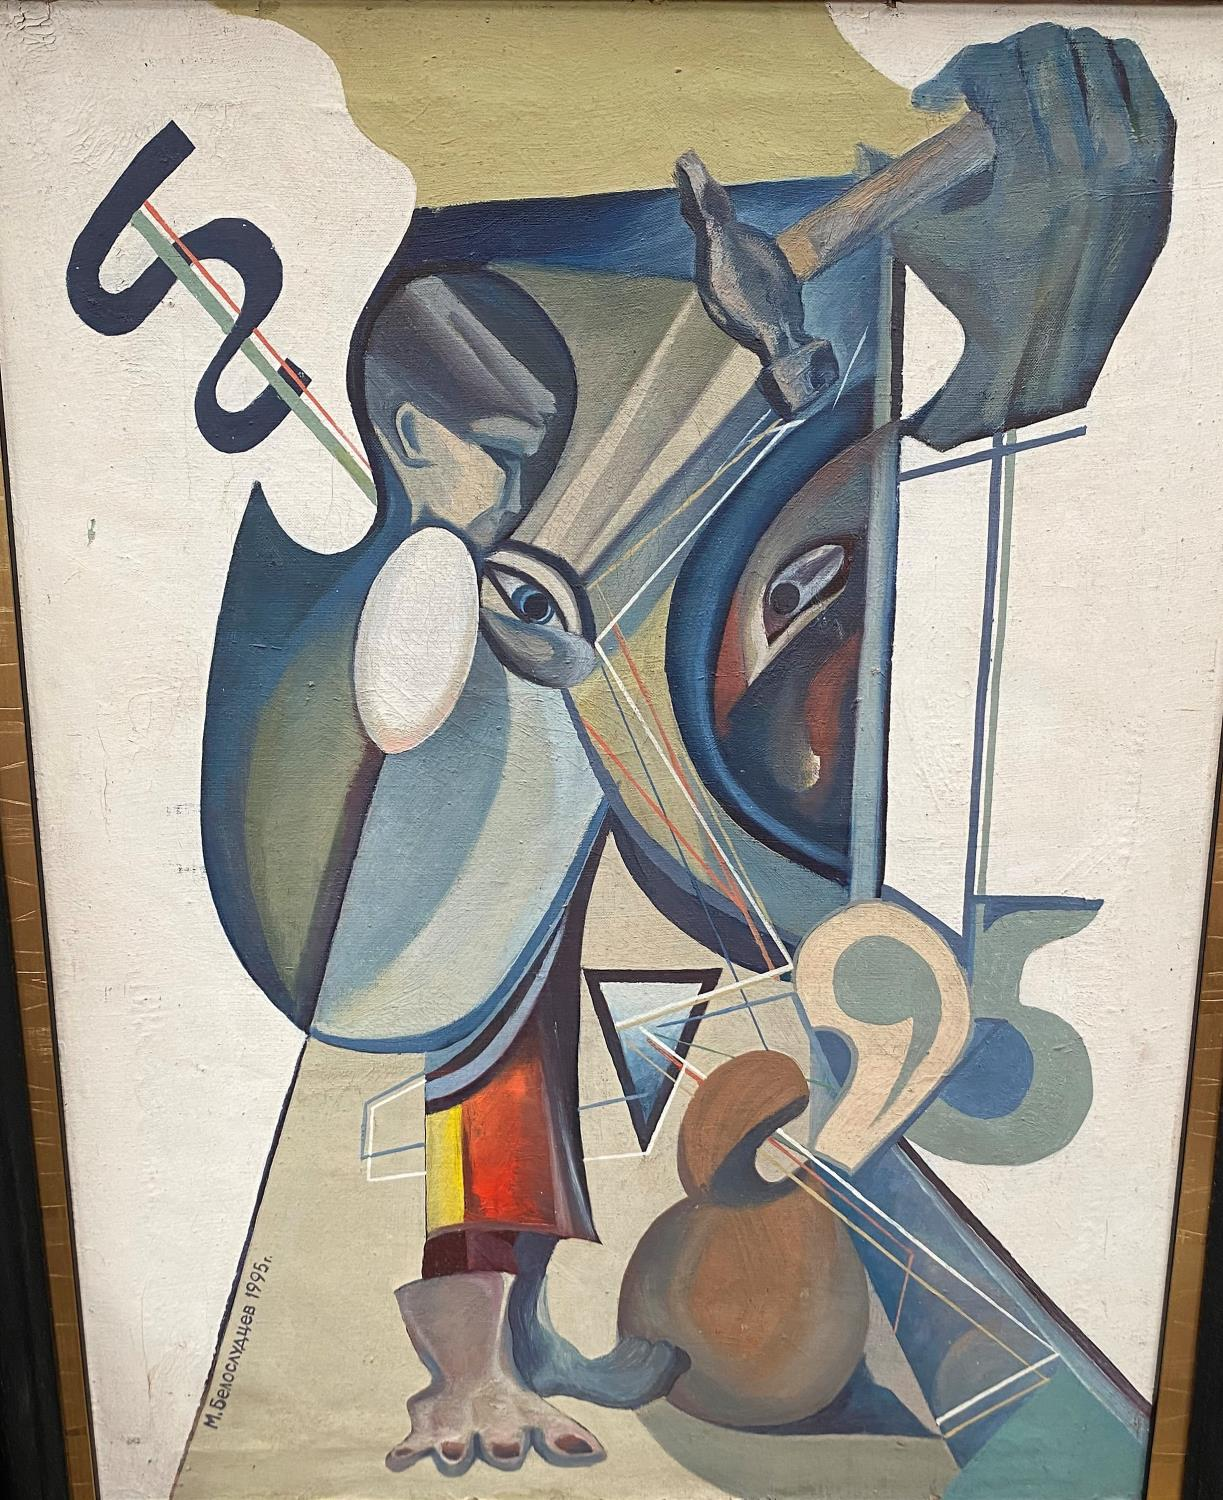 """M Balasludchev - """"Zerkalo"""" (in the looking glass), abstract oil on canvass in the manner of Picasso, - Image 2 of 6"""